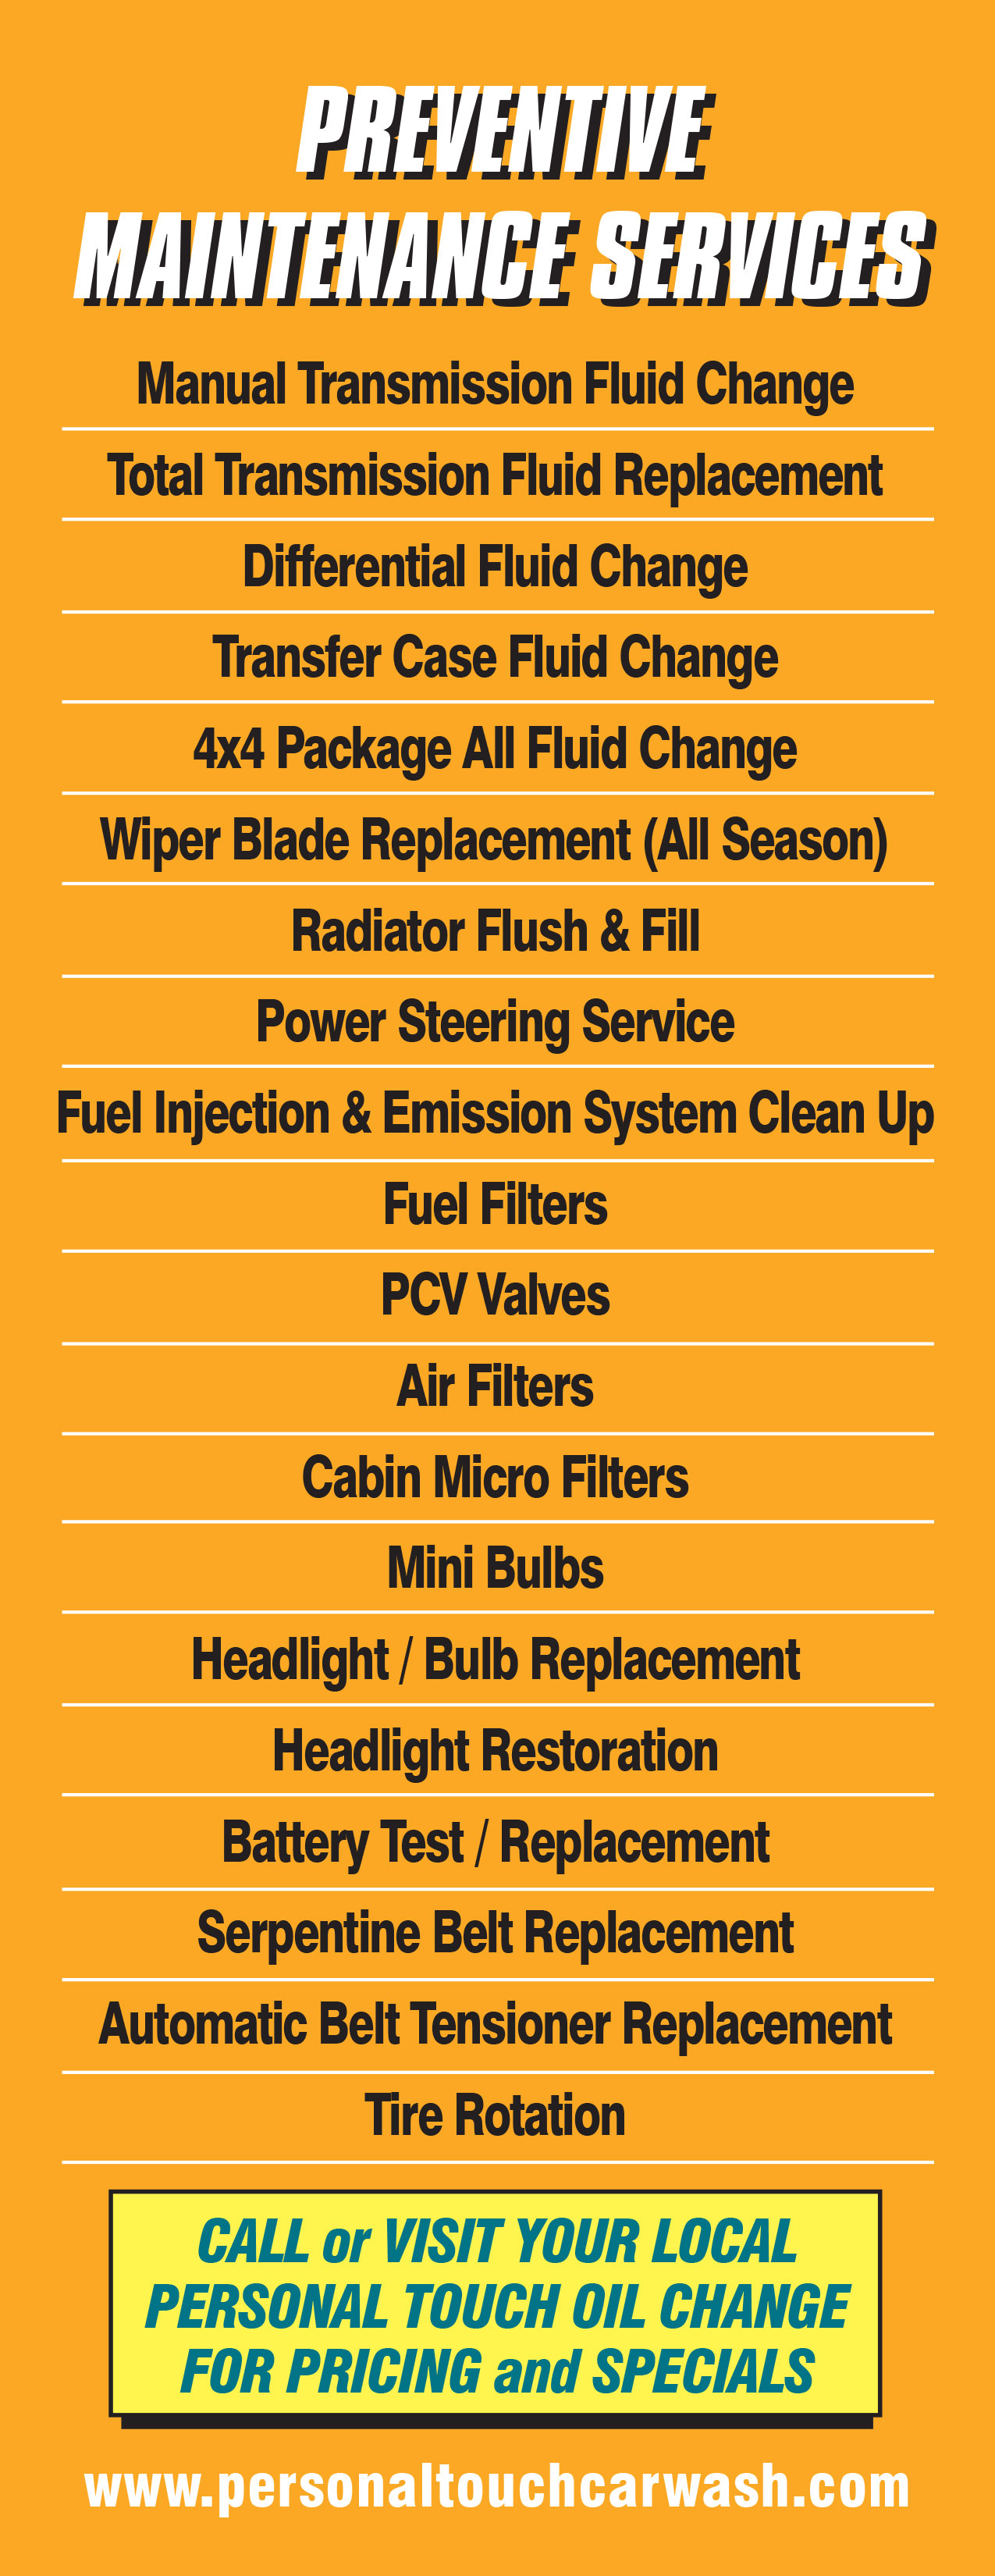 Oil & Lube Additional Services